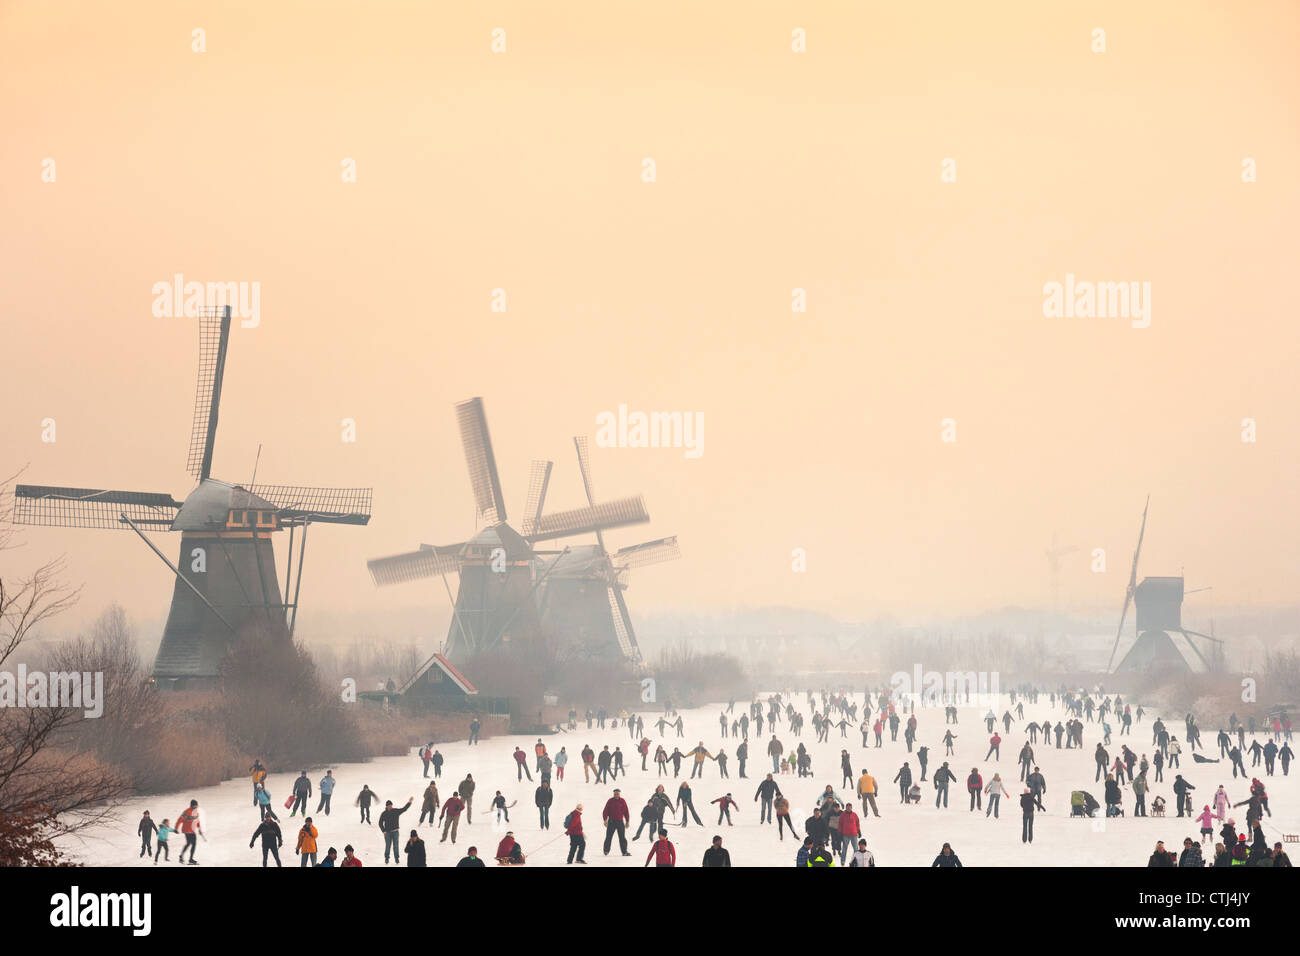 http://c7.alamy.com/comp/CTJ4JY/dutch-ice-skaters-in-front-of-five-of-the-19-windmills-at-kinderdijk-CTJ4JY.jpg